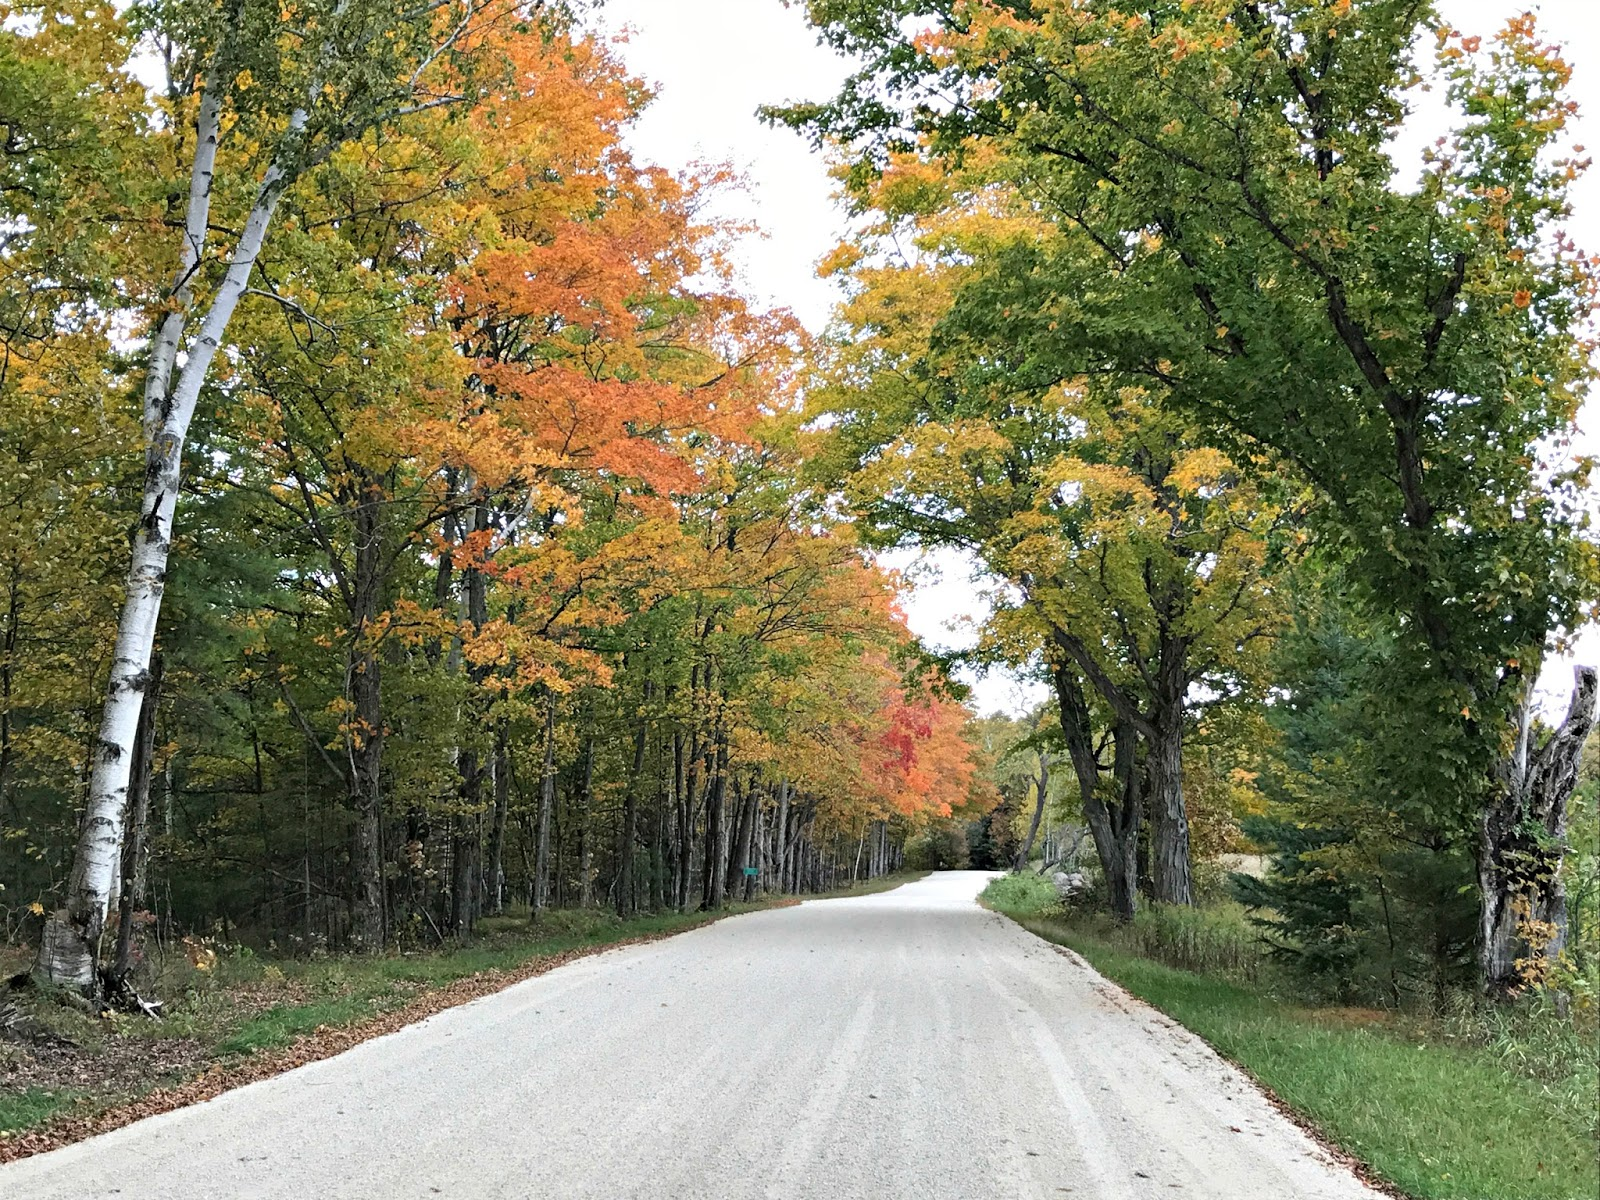 ... C. Door County is located on a peninsula in northeastern Wisconsin surrounded by Green Bay and Lake Michigan. We spend most of our time in the northern ... & Door County Fall Colors + Dinner Date at Wickman House - Chicago ... pezcame.com